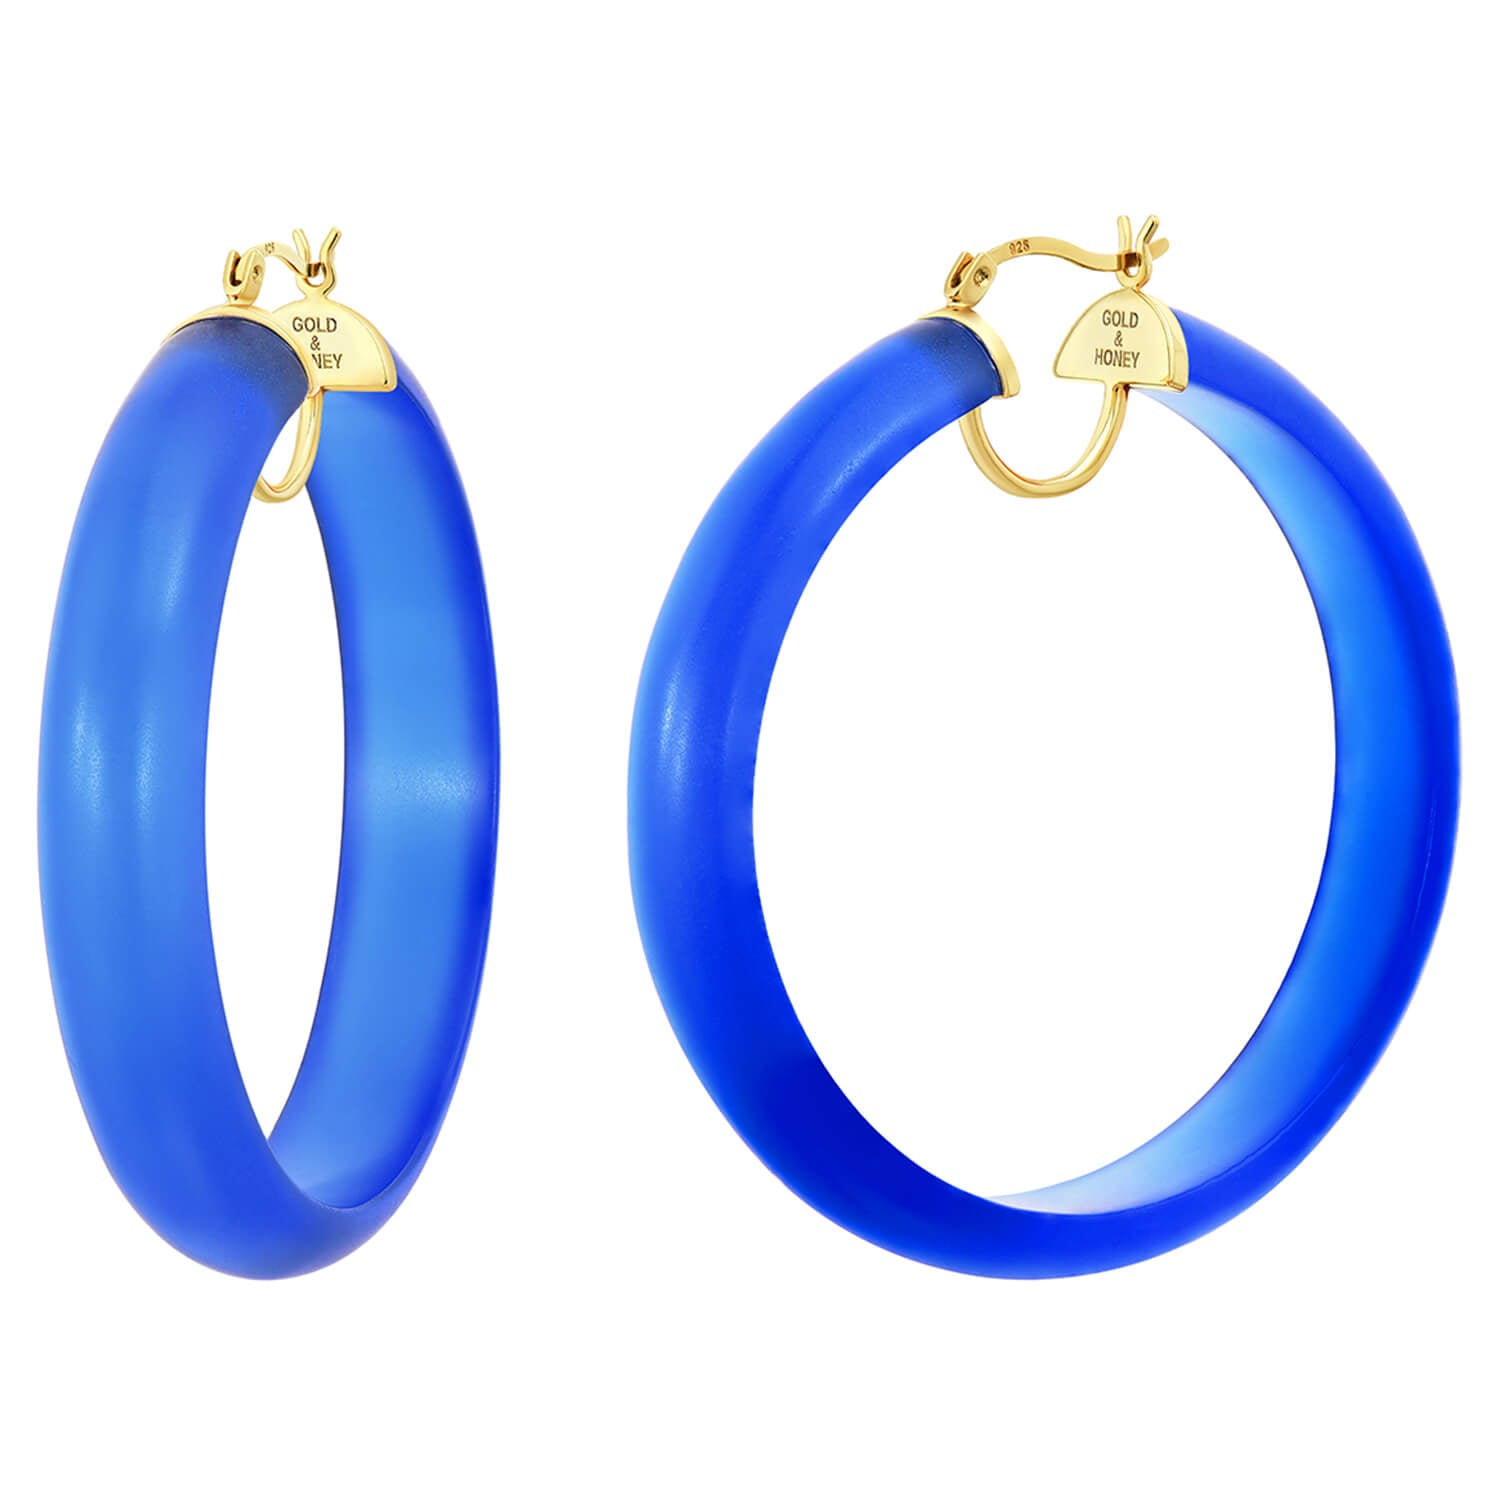 Frosted Lucite Hoops in Blue